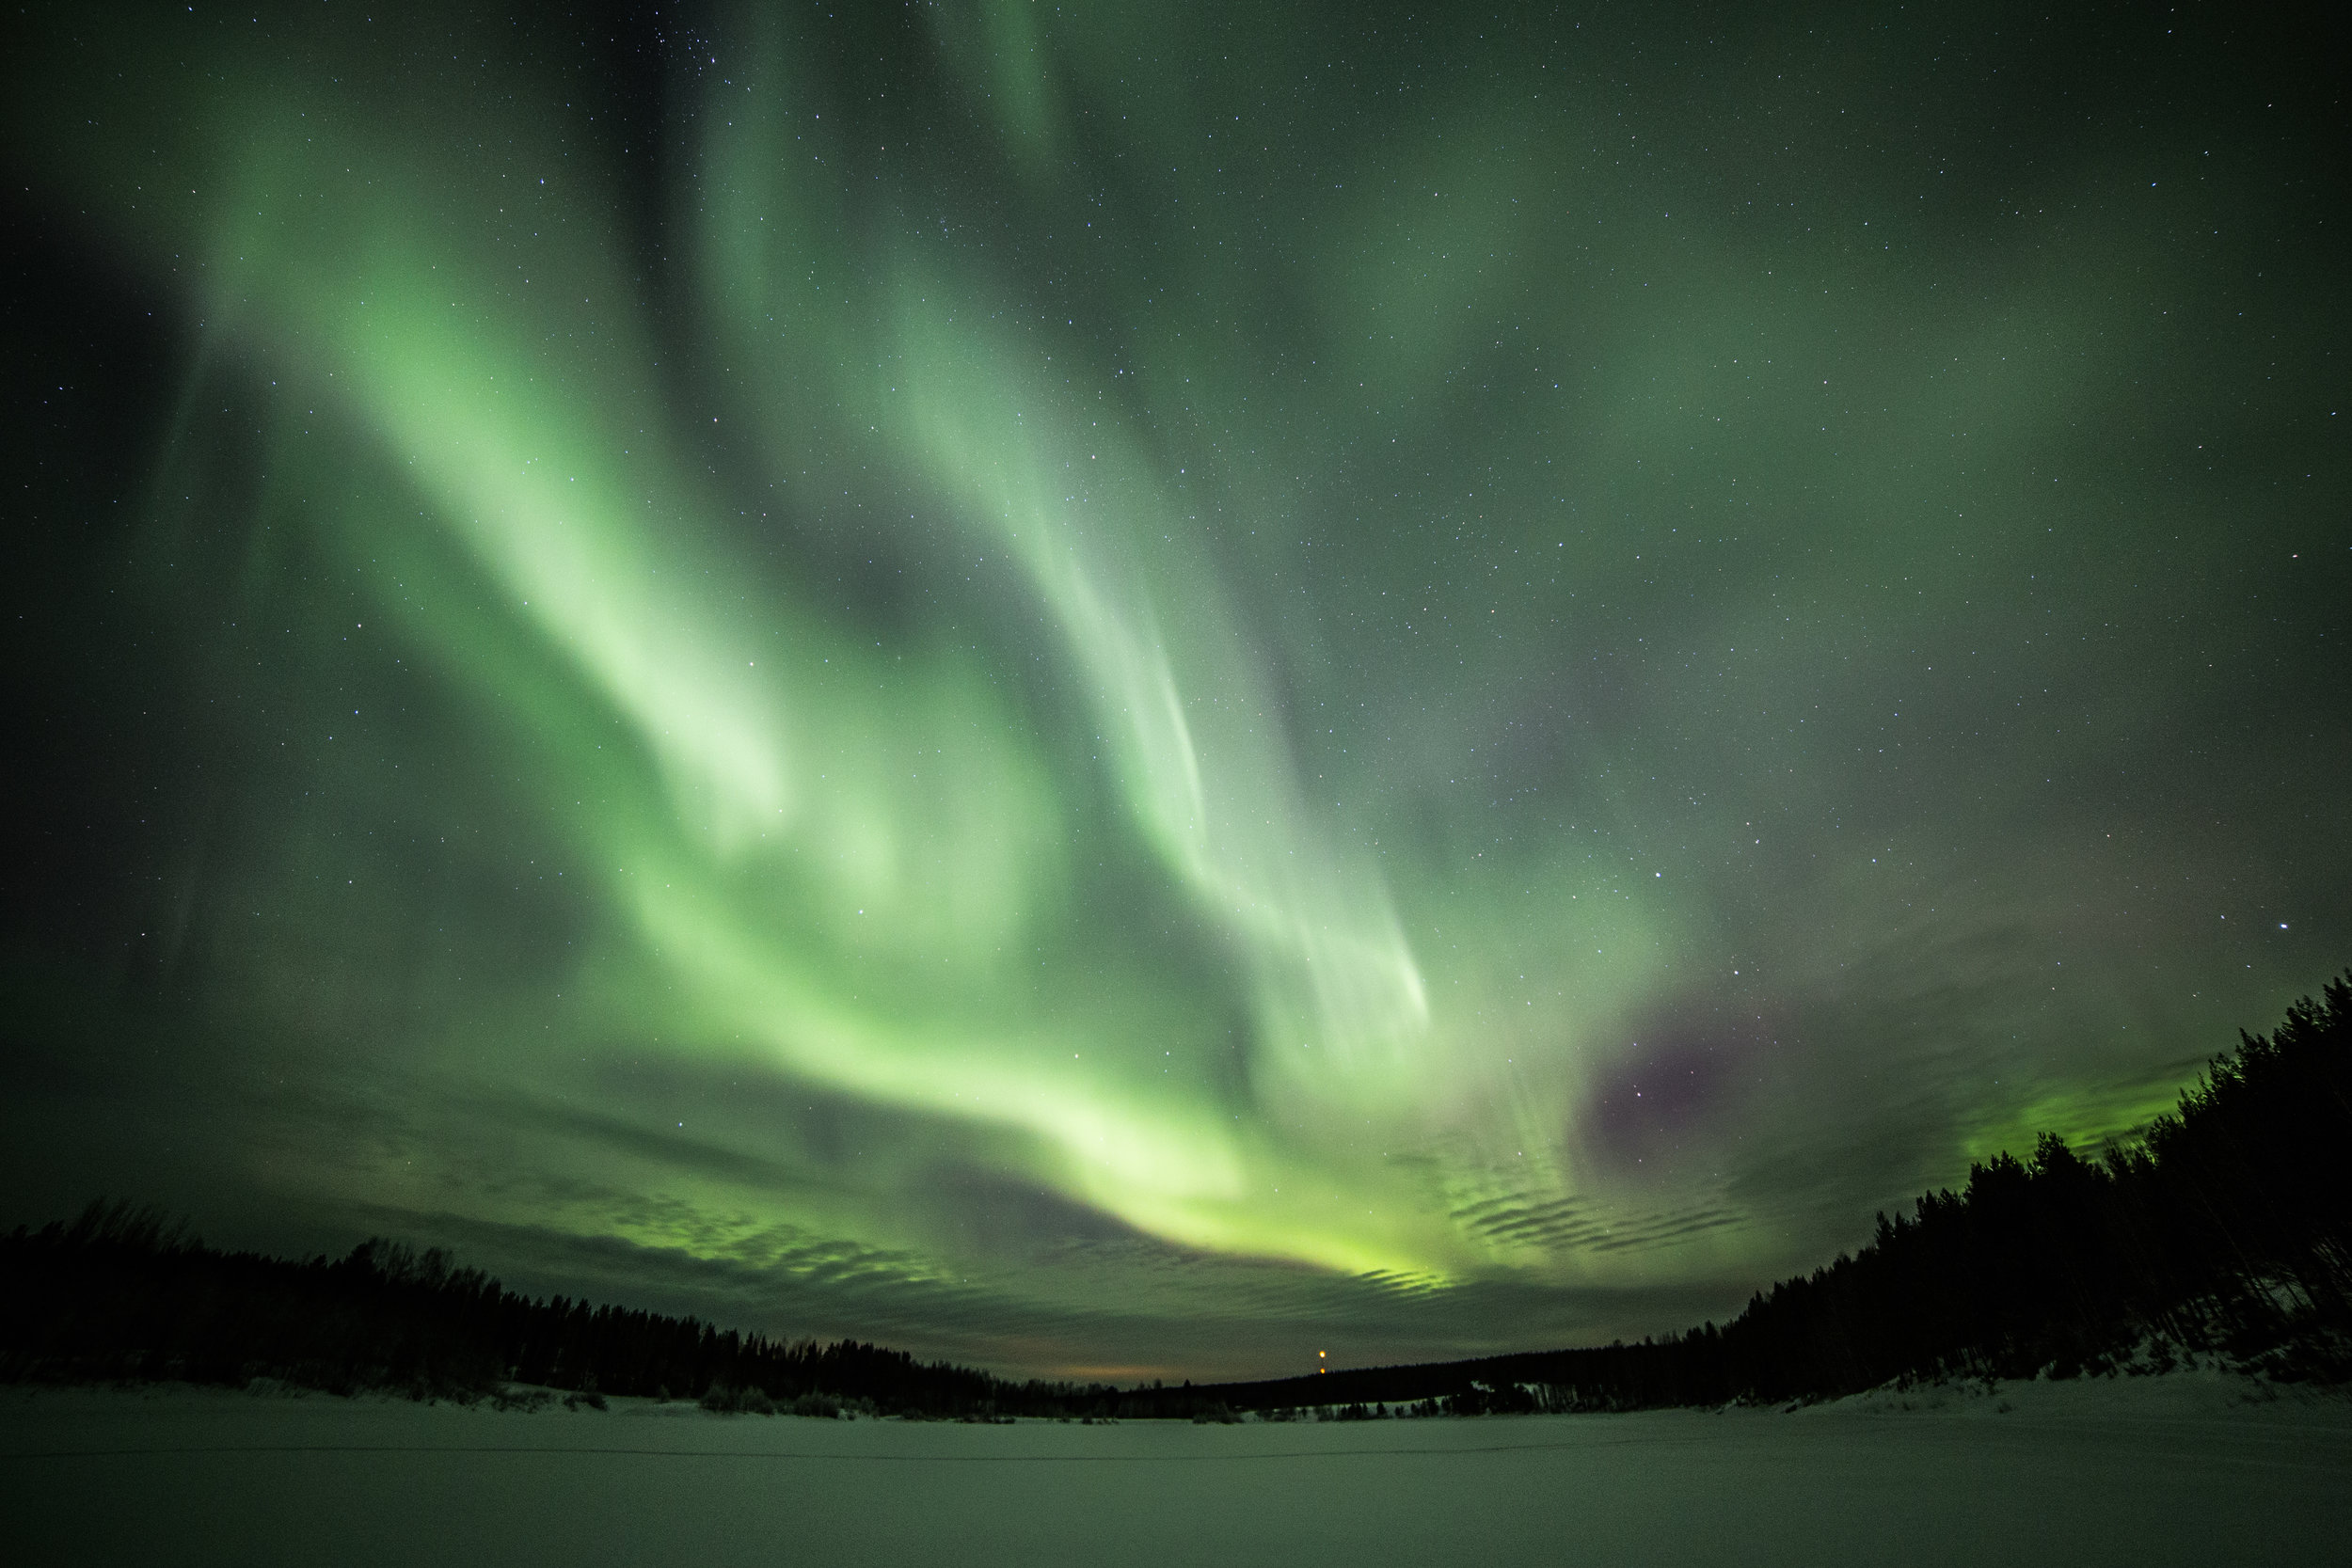 The Northern Lights adds to the magic at this time of year in Rovaniemi. Copyright: ©Visit Rovaniemi (Rovaniemi Tourism & Marketing Ltd.